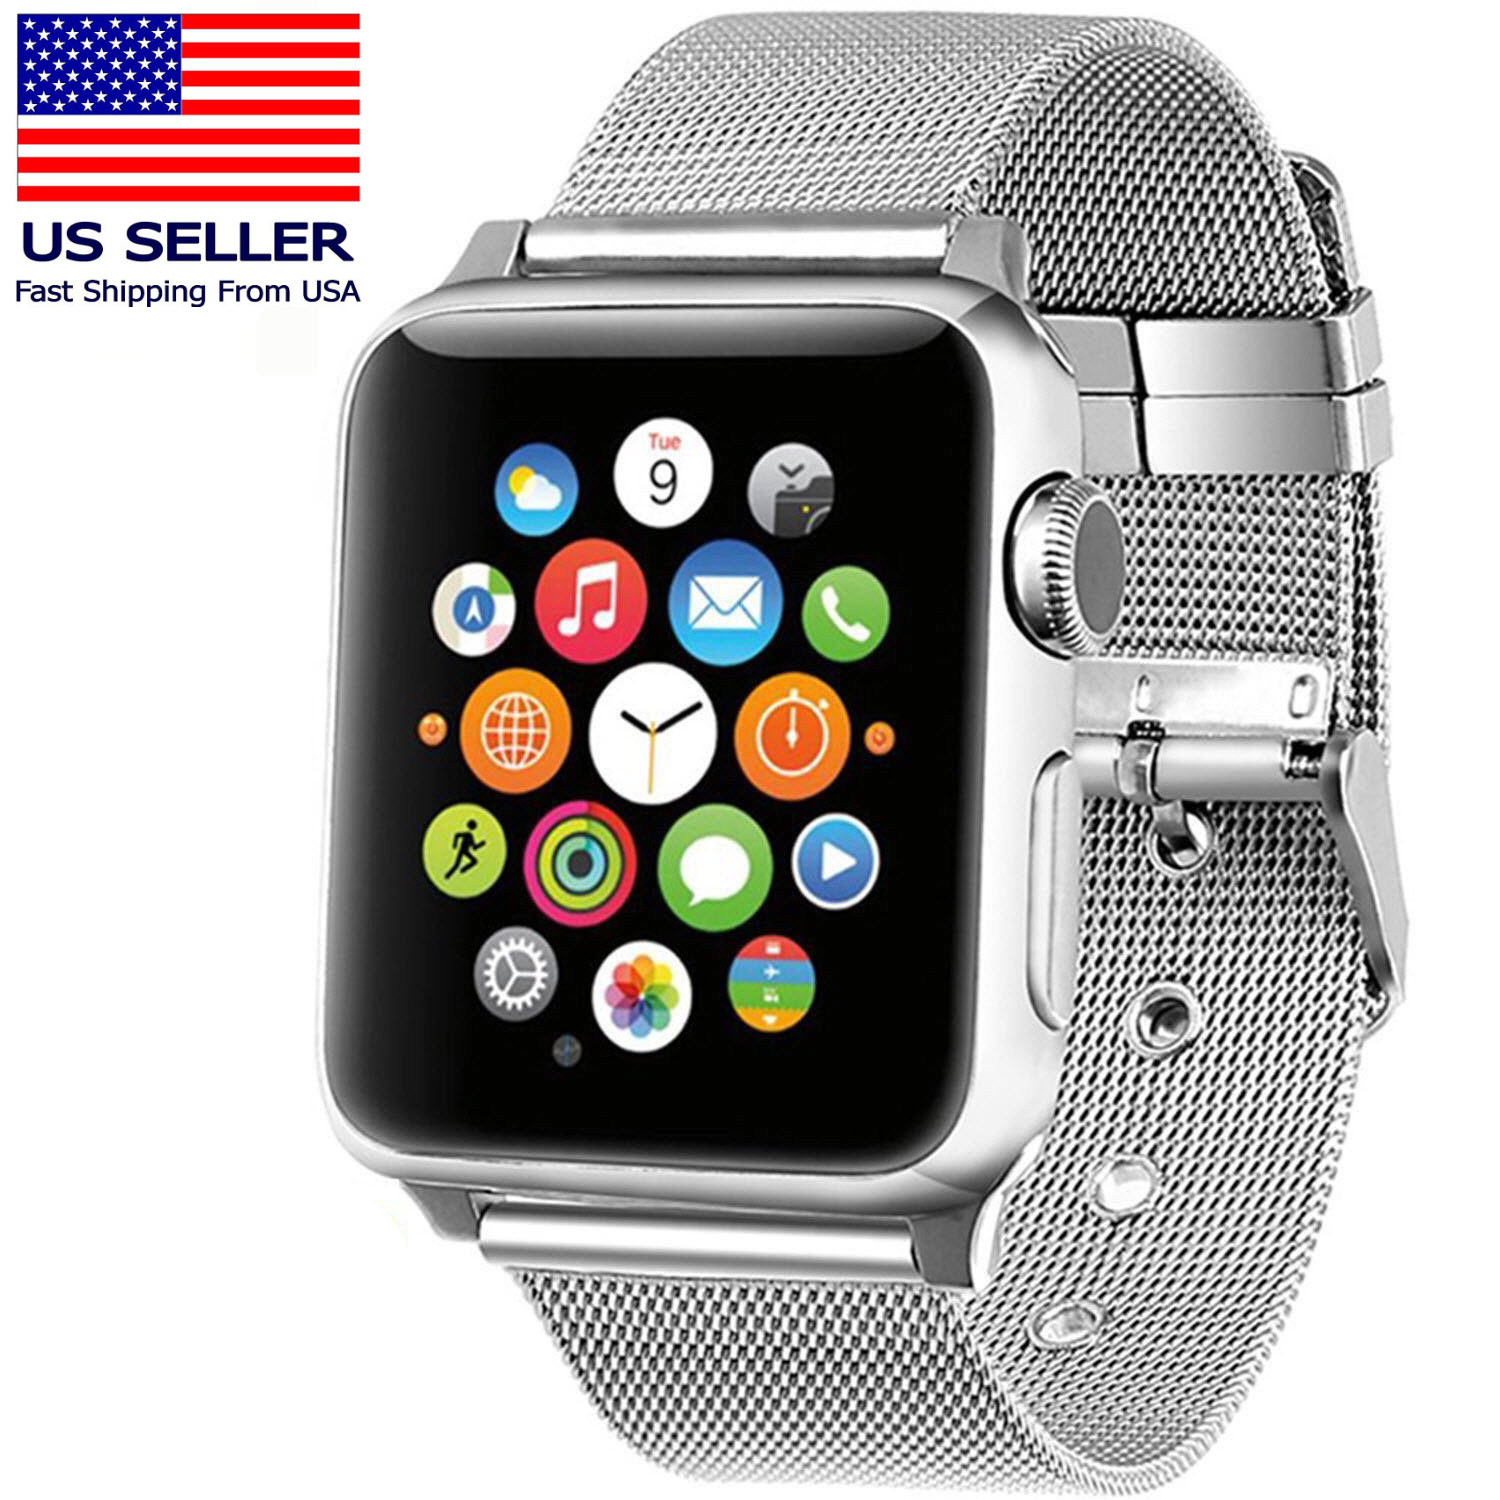 Stainless Steel iWatch Replacement Band 42mm Apple Watch Ser